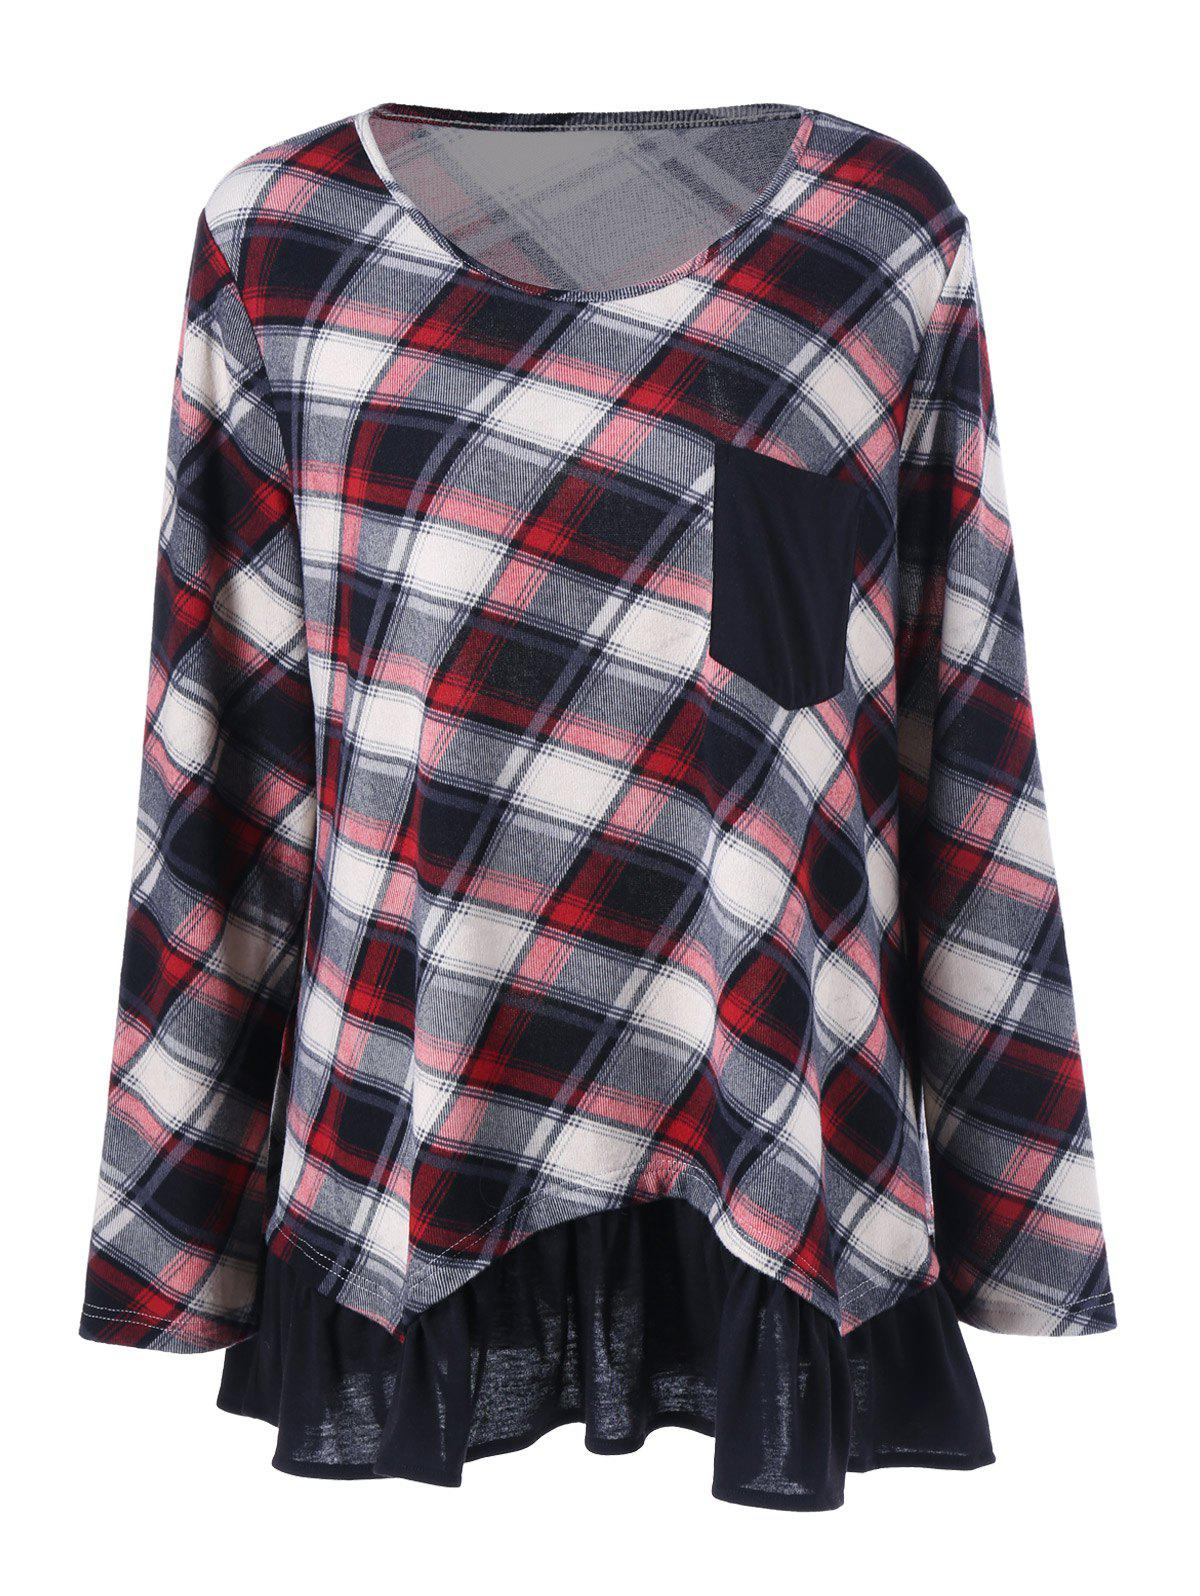 Plus Size Flounced Plaid T-ShirtWOMEN<br><br>Size: 3XL; Color: CHECKED; Material: Polyester,Spandex; Shirt Length: Long; Sleeve Length: Full; Collar: Scoop Neck; Style: Casual; Season: Fall,Spring; Pattern Type: Plaid; Weight: 0.3900kg; Package Contents: 1 x T-Shirt;